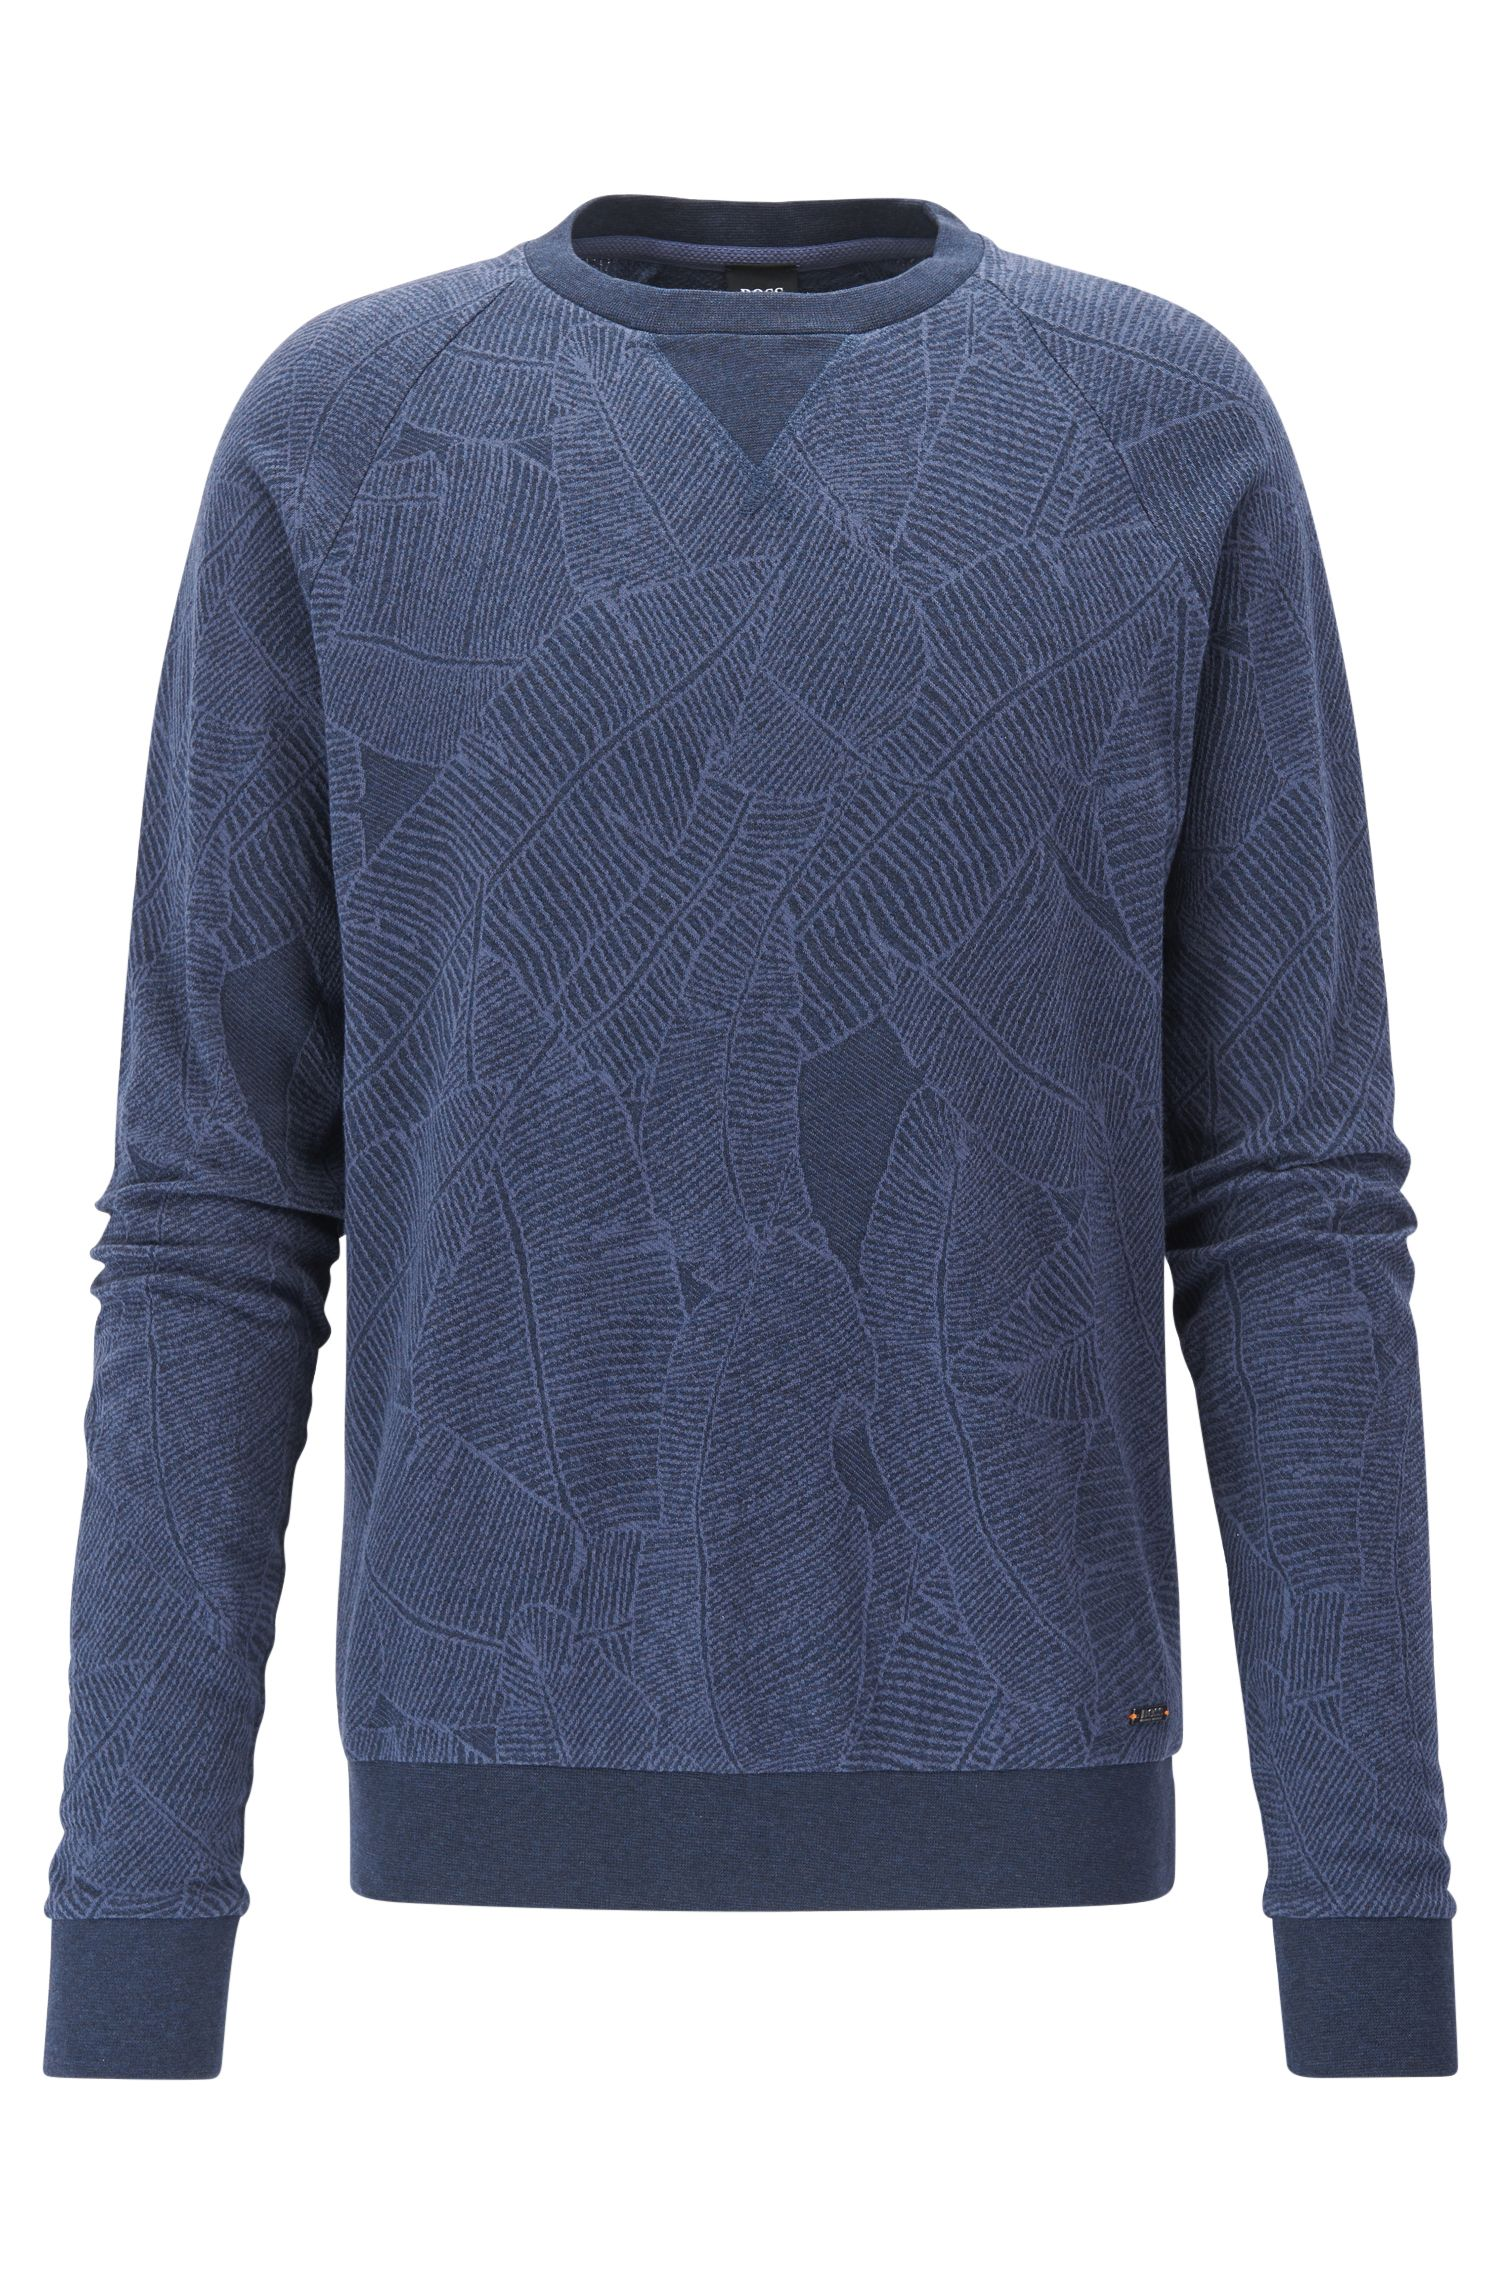 Leaf-Print Cotton Sweatshirt | Wenti